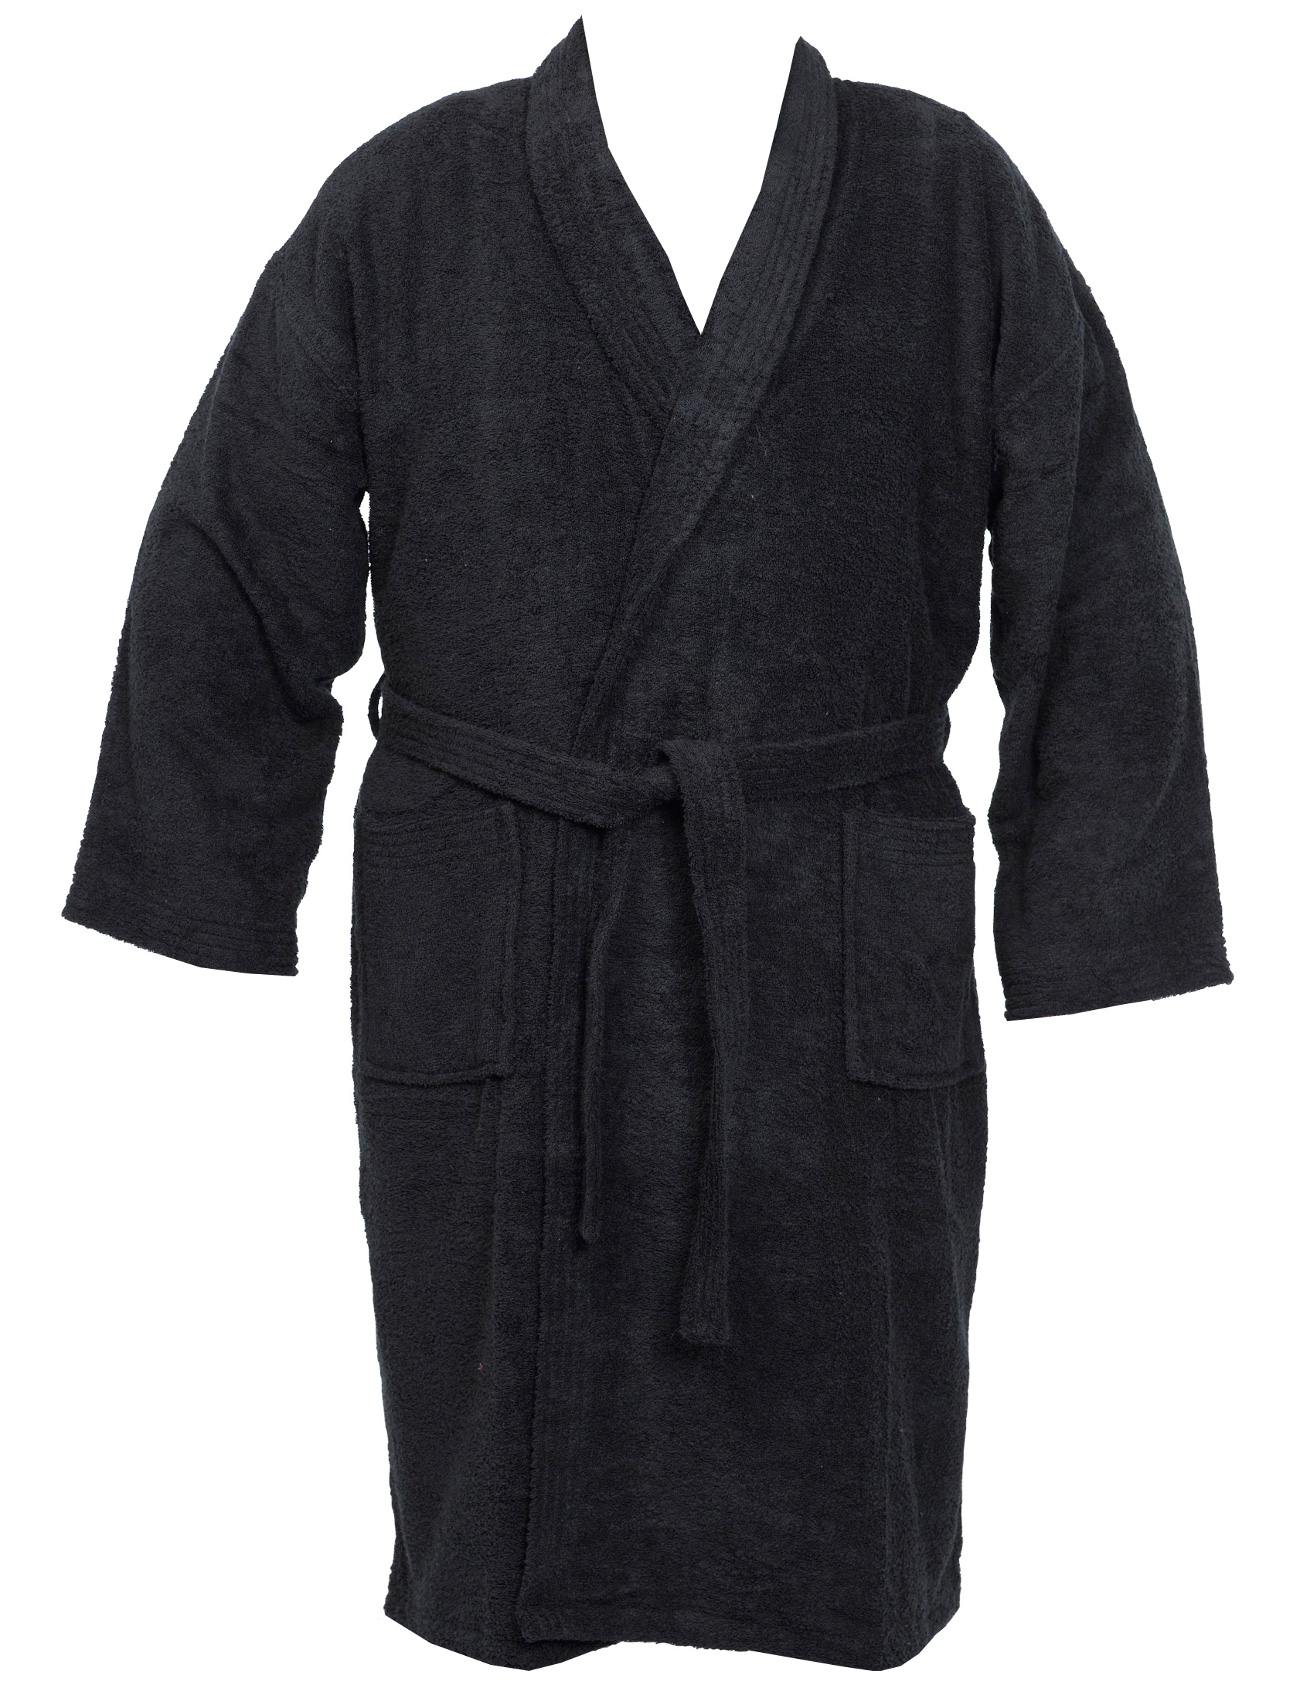 Unisex Bathrobe Cotton Terry Towelling Dressing Gown Mens Womens